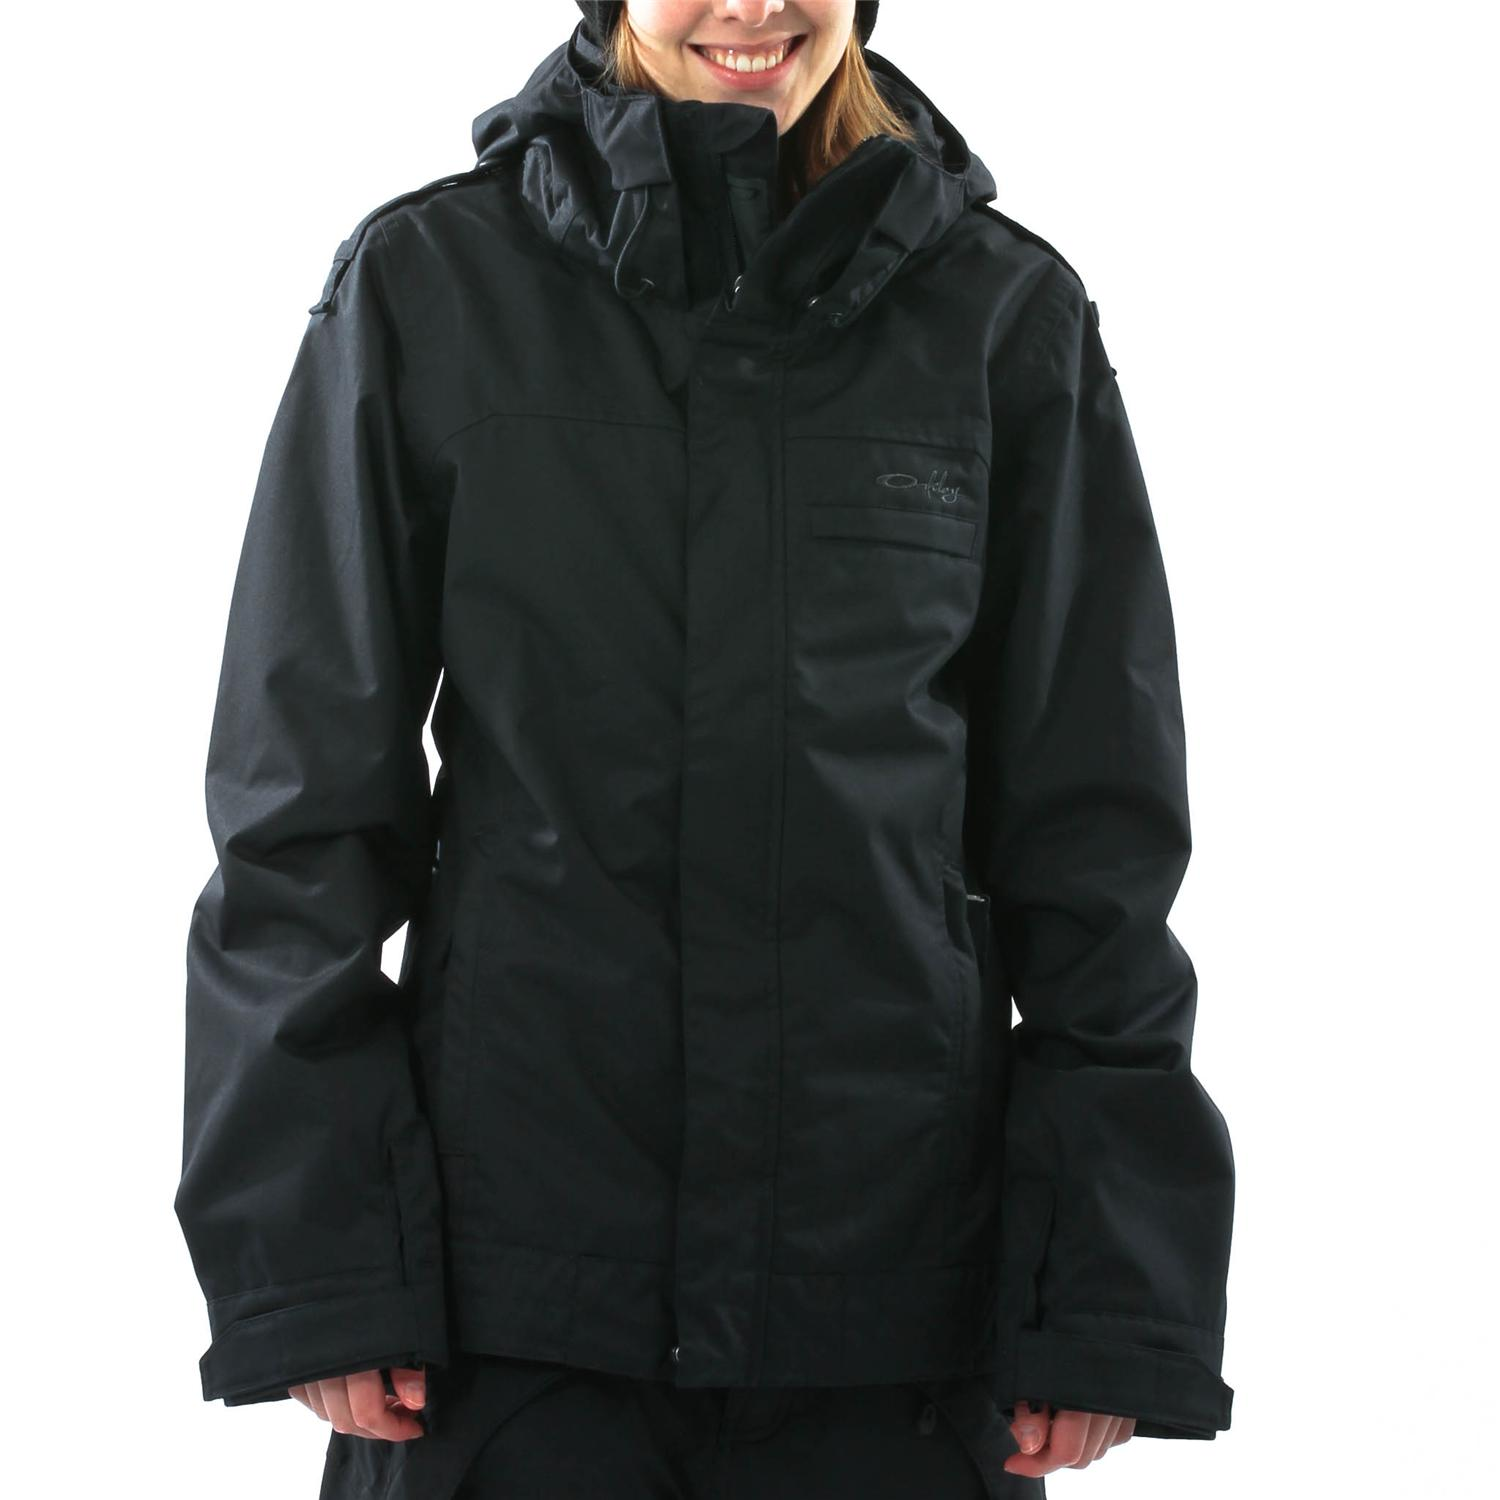 Oakley womens jacket